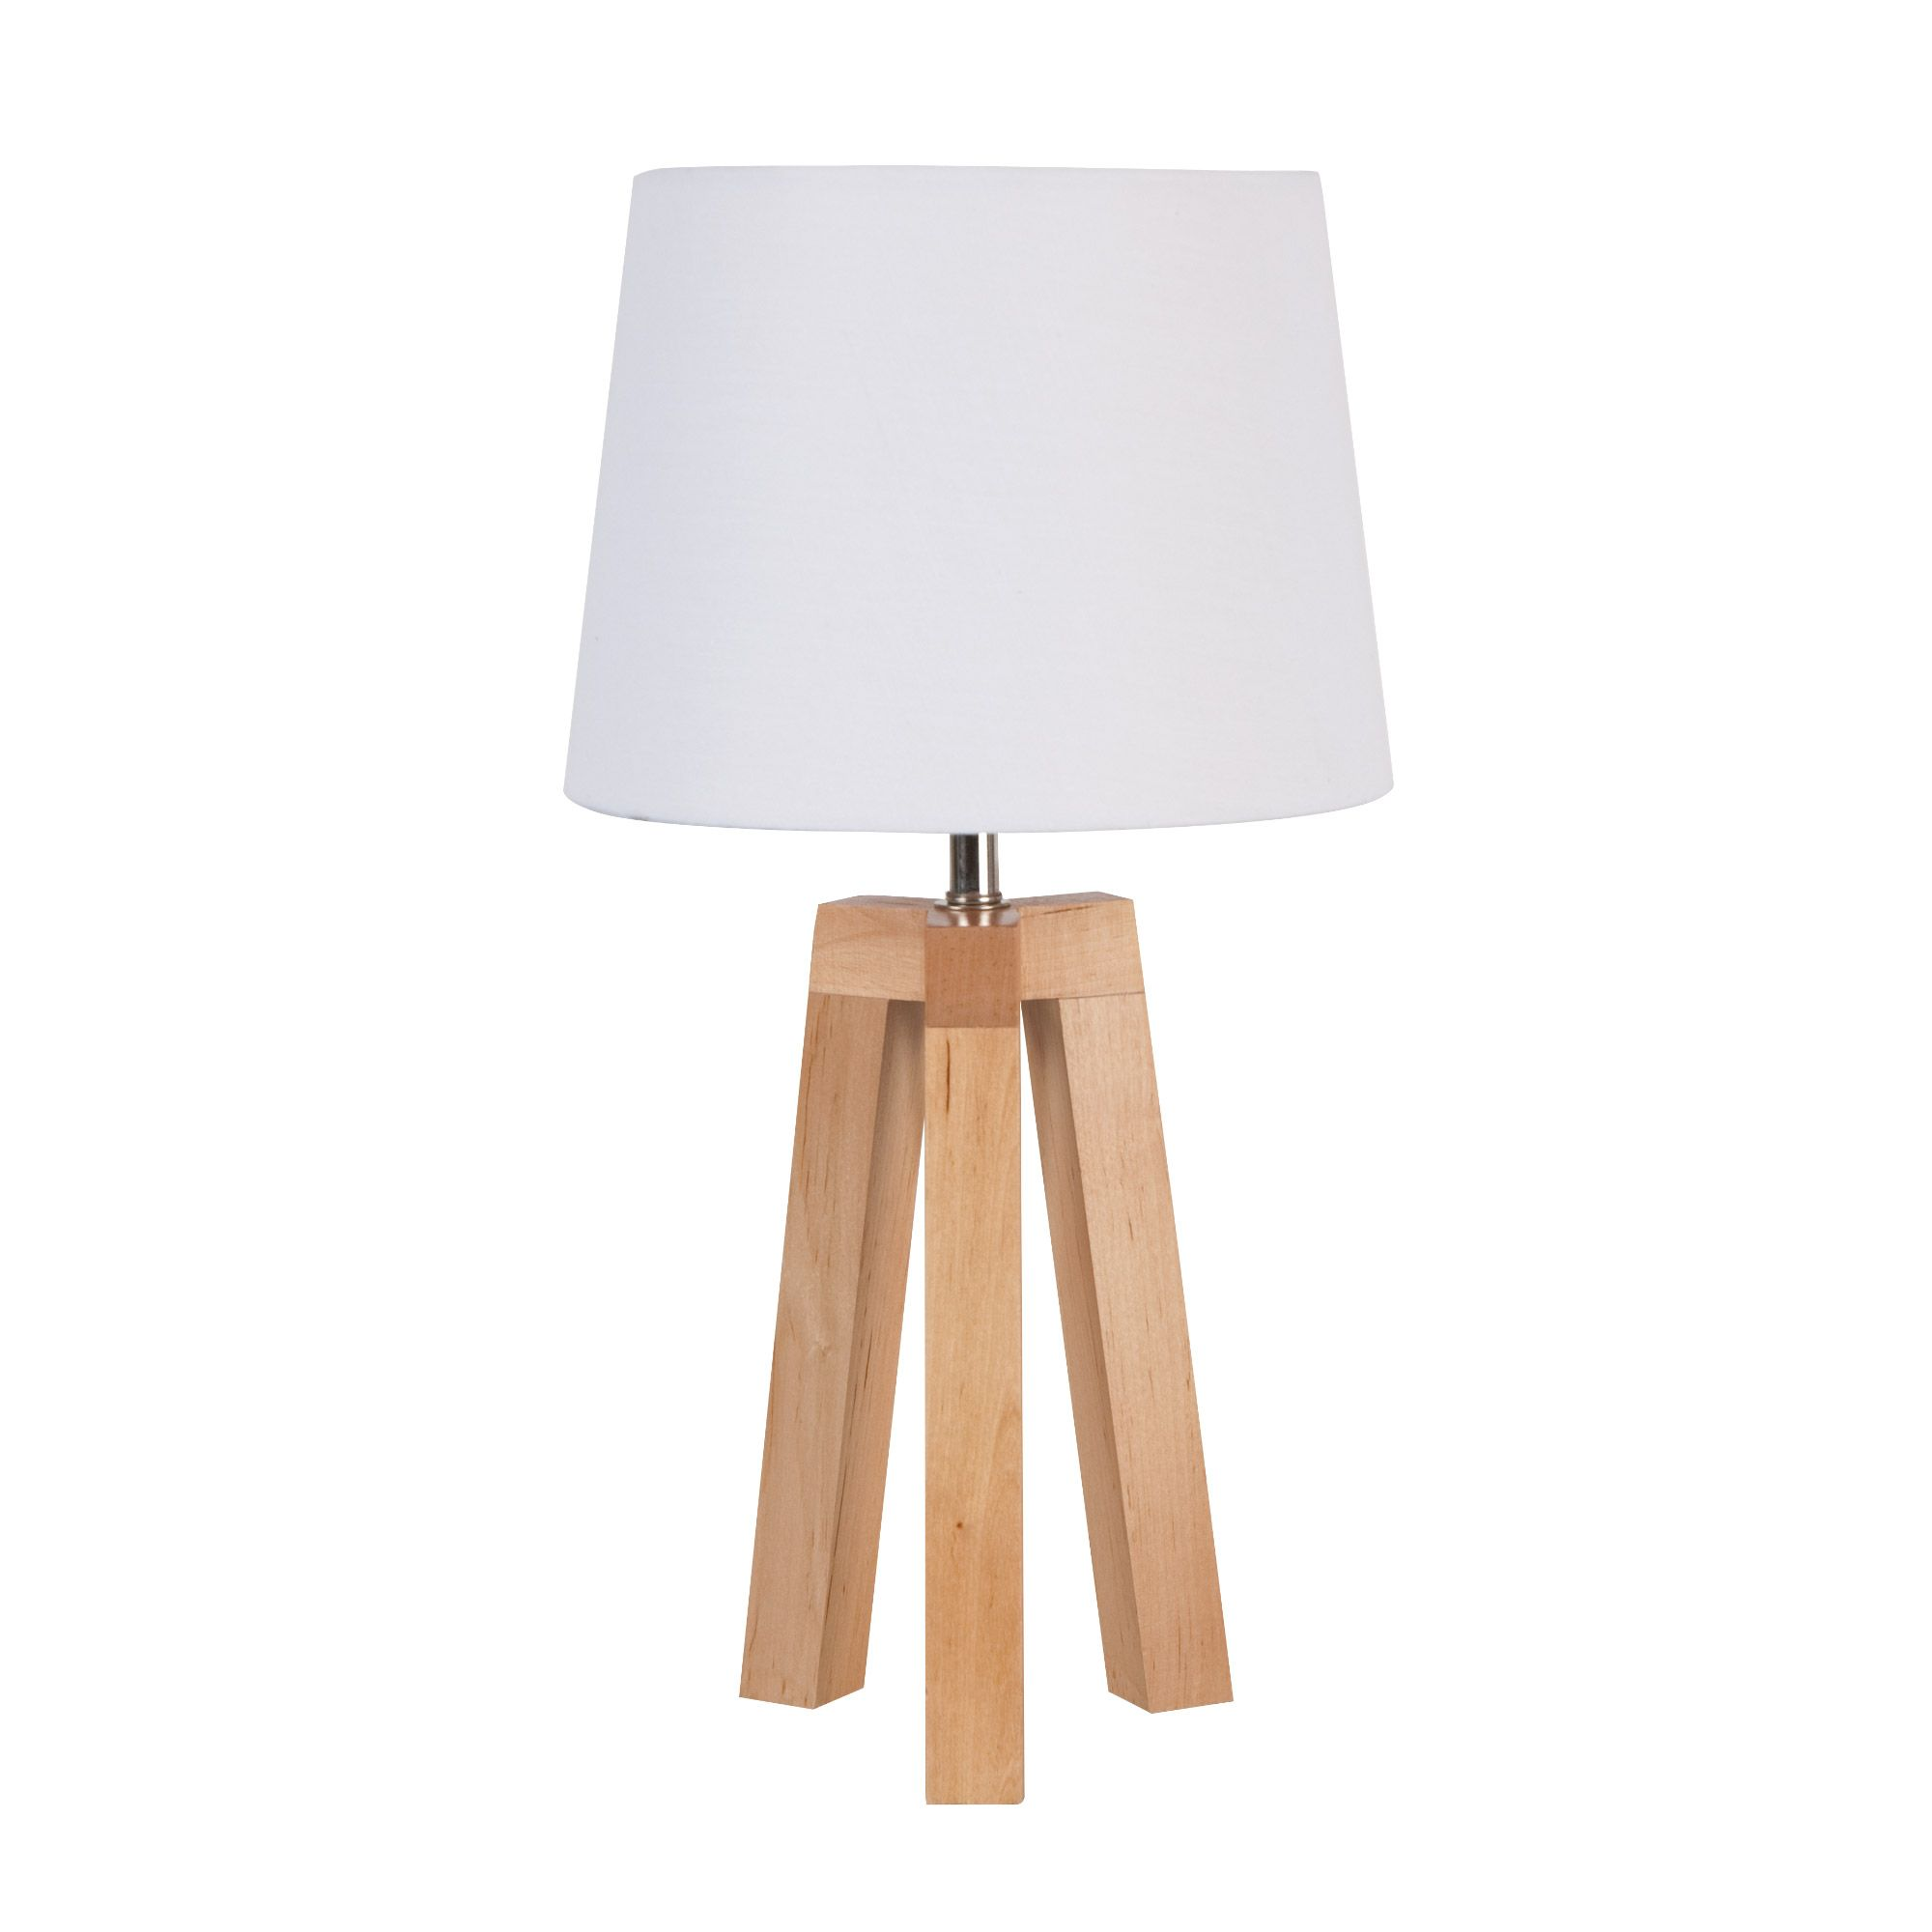 lampe a poser style scandinave